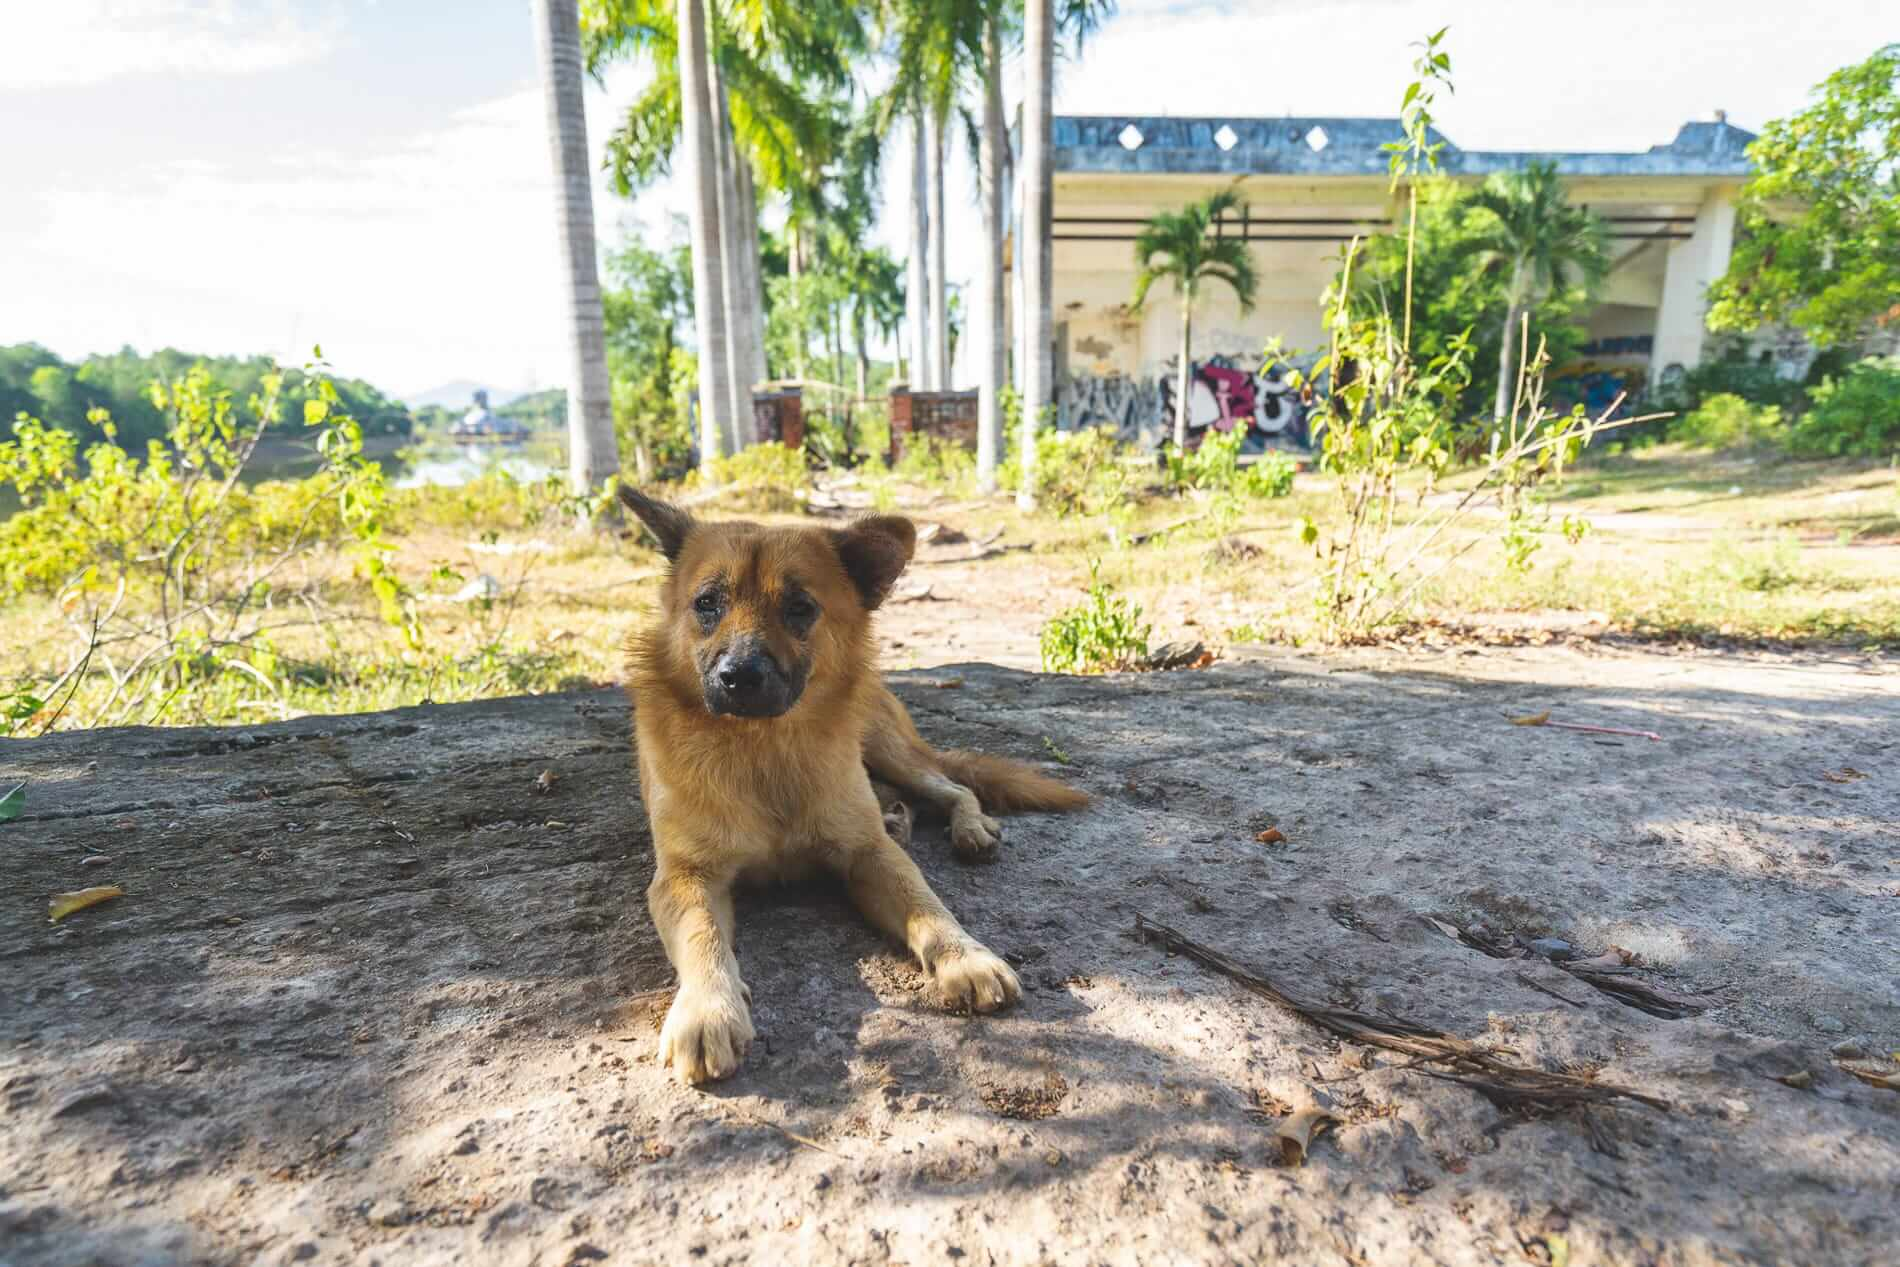 A dog resting at Hue's Abandoned Water Park